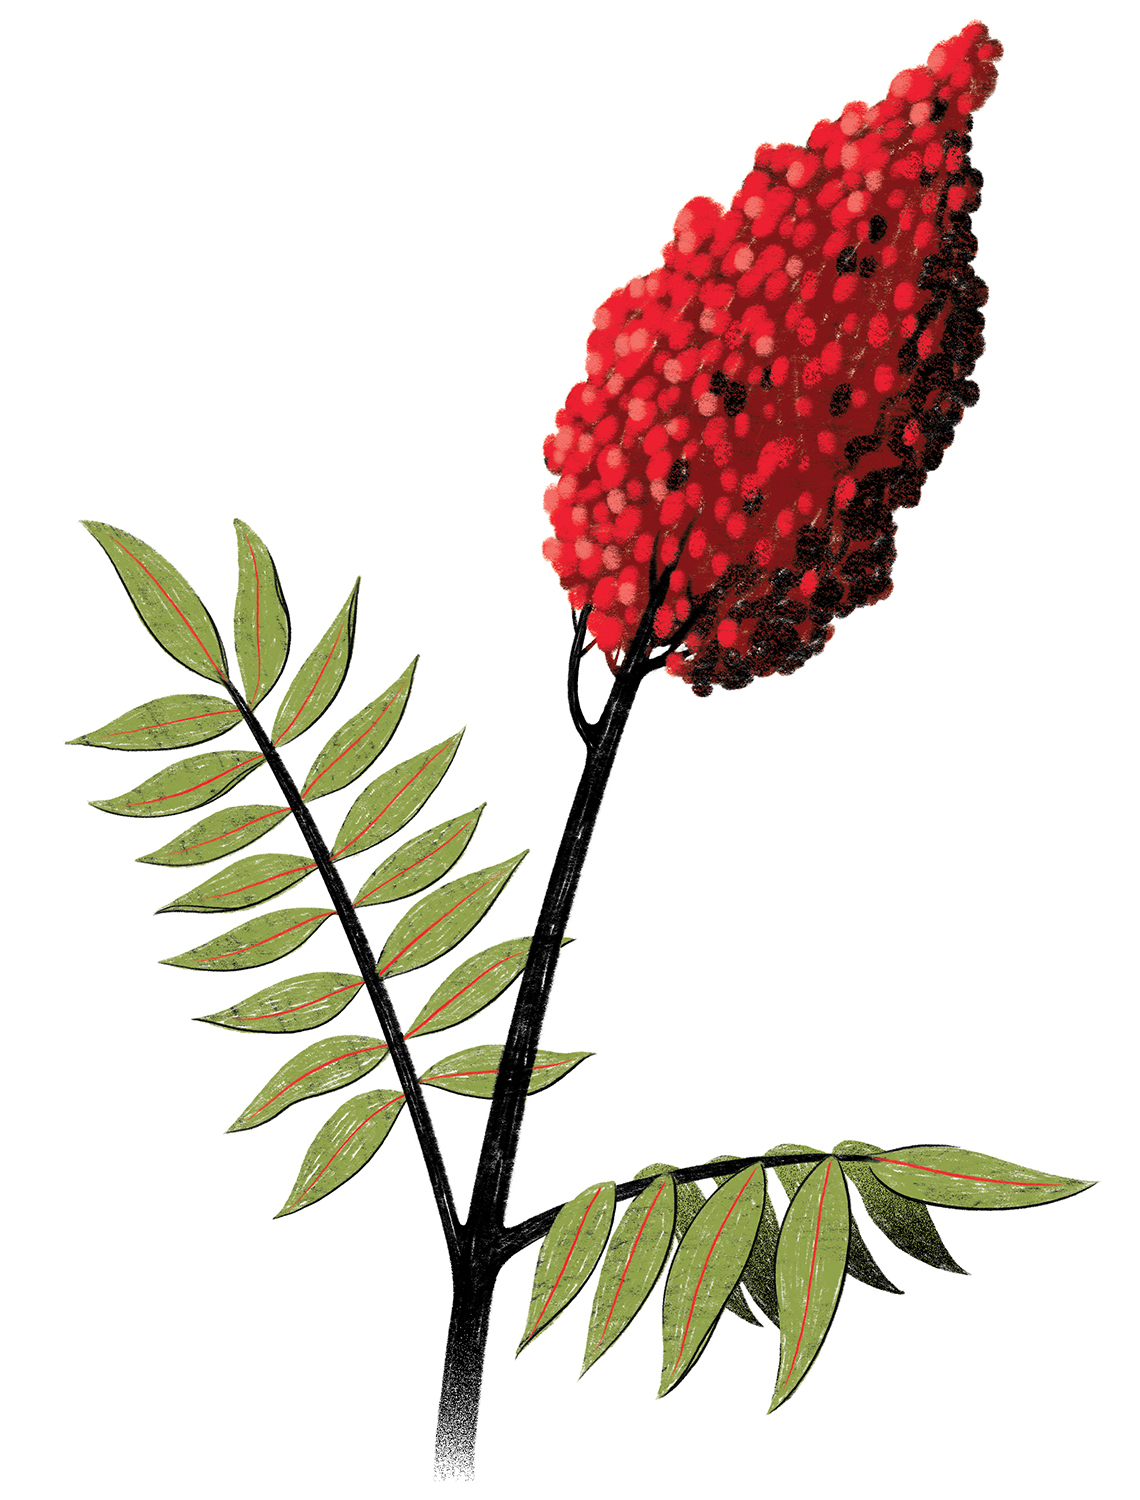 An illustration of a sumac plant